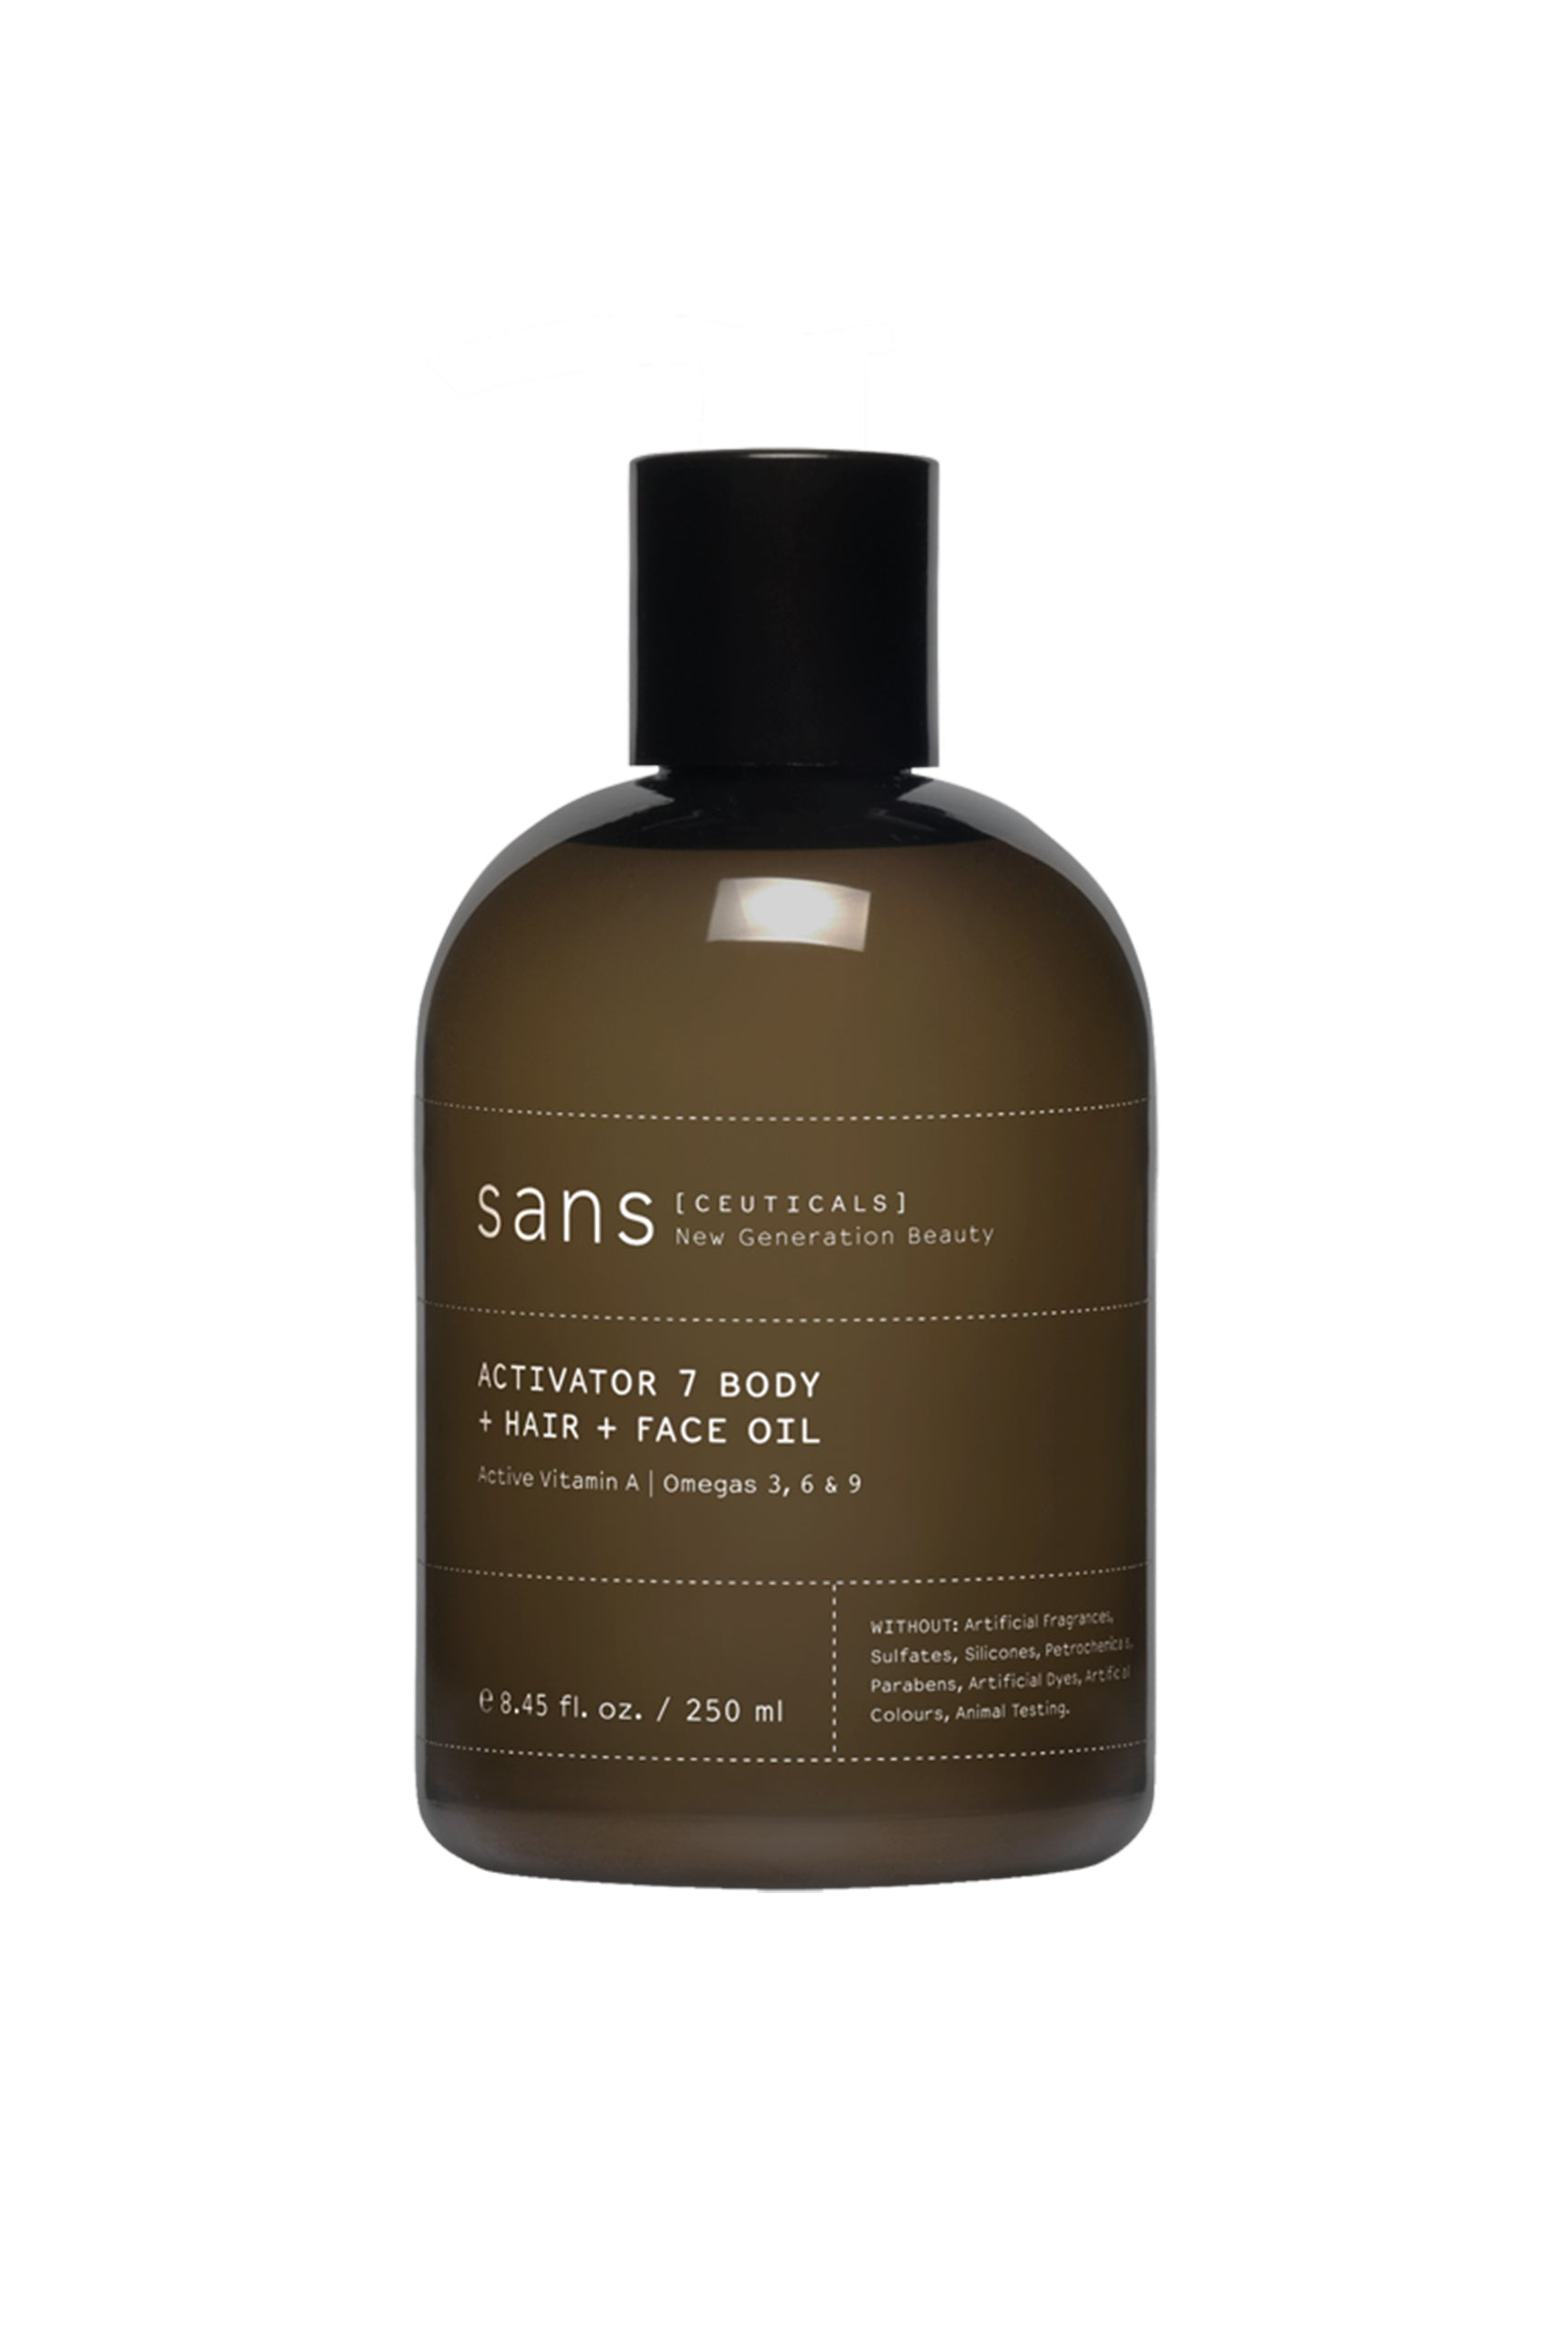 Sans [ceuticals] - Activator 7 Body + Hair + Face Oil